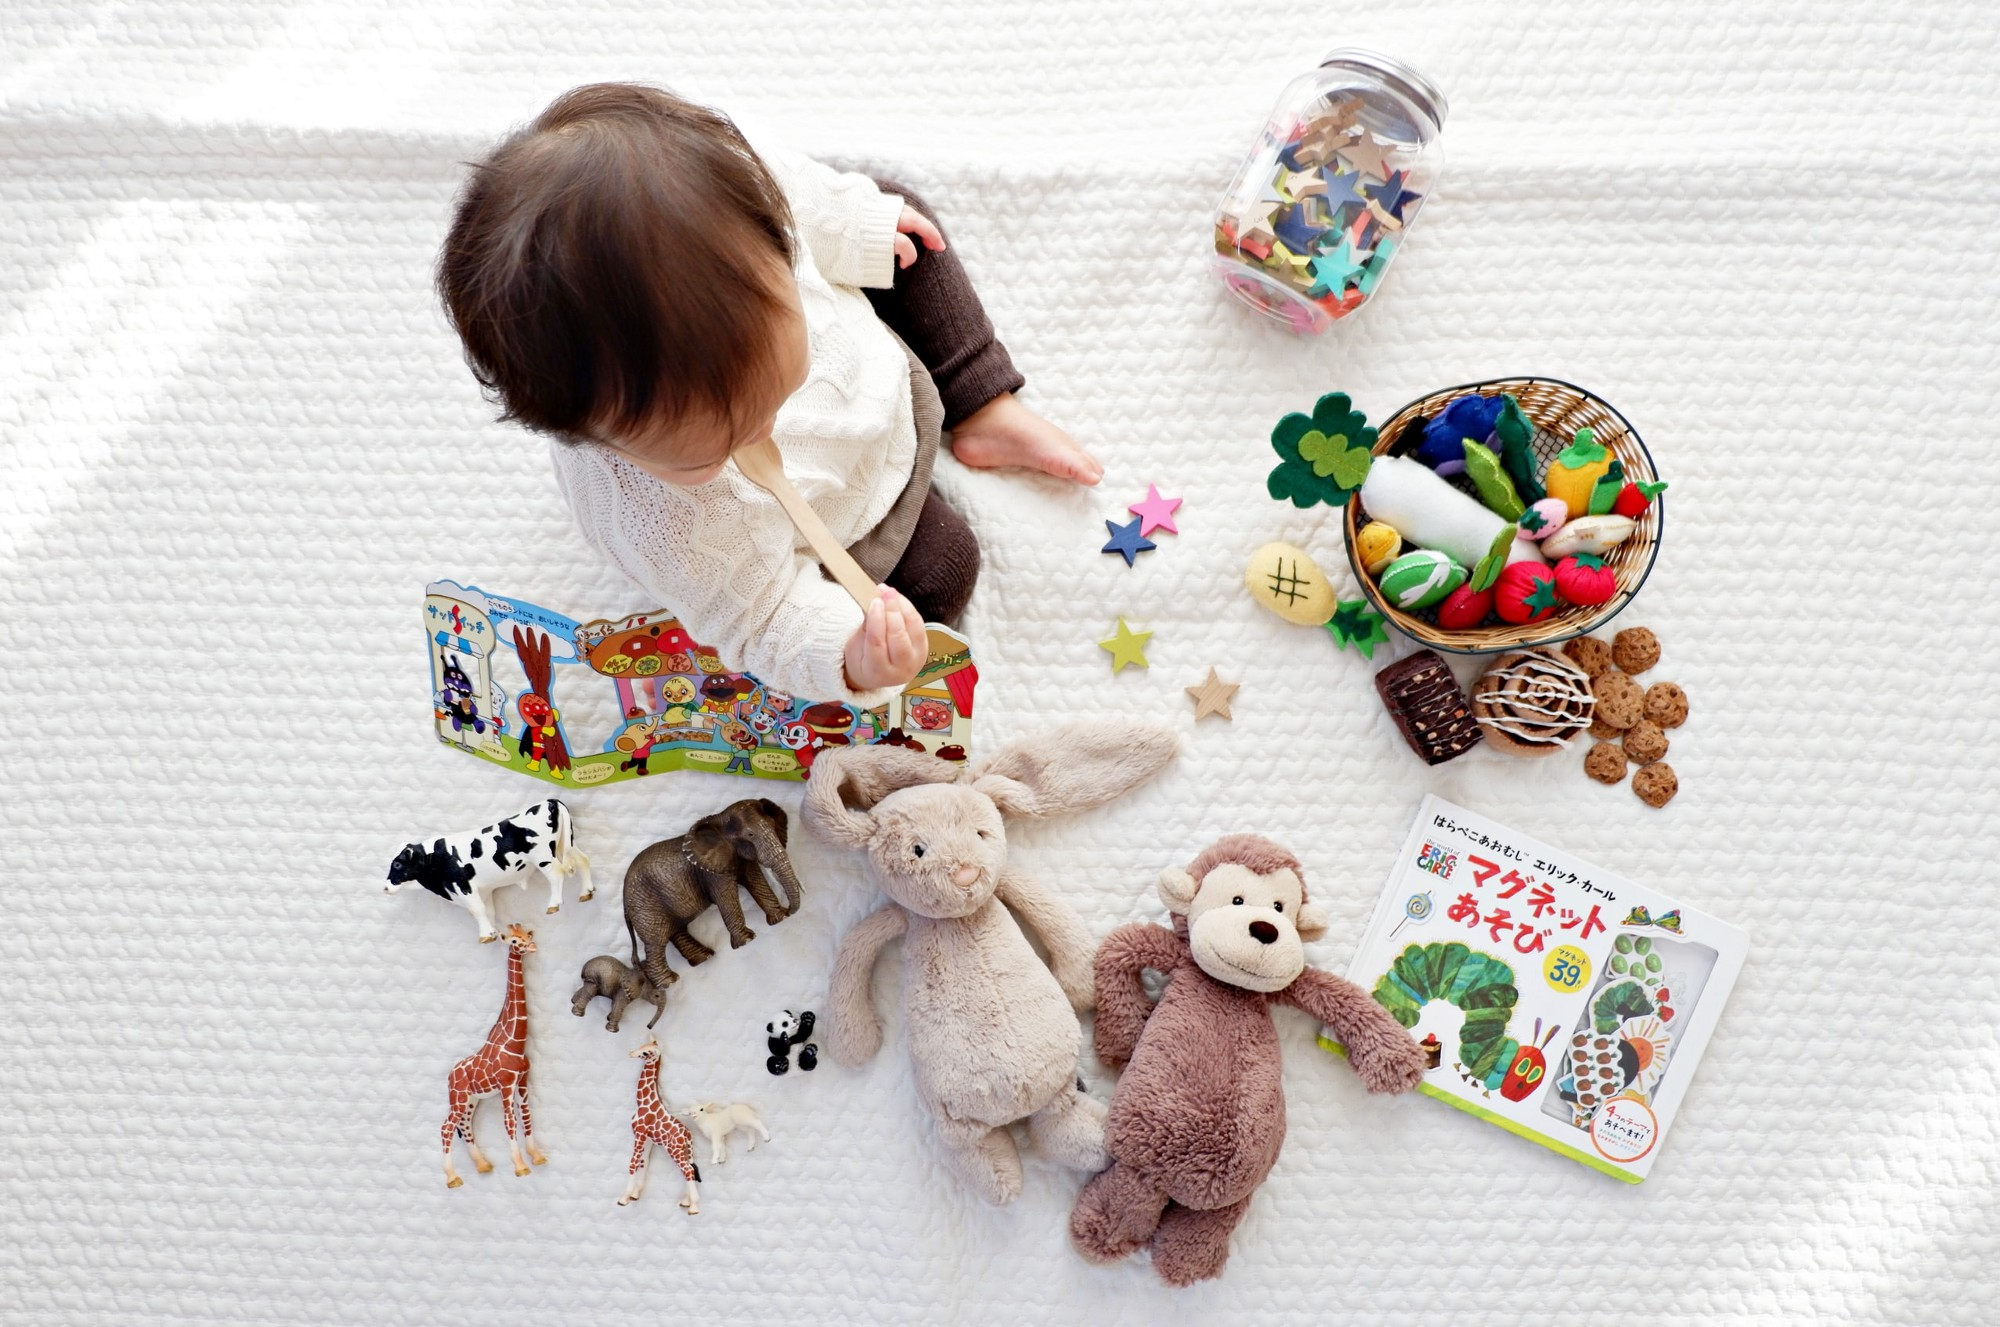 Child surrounded by toys.